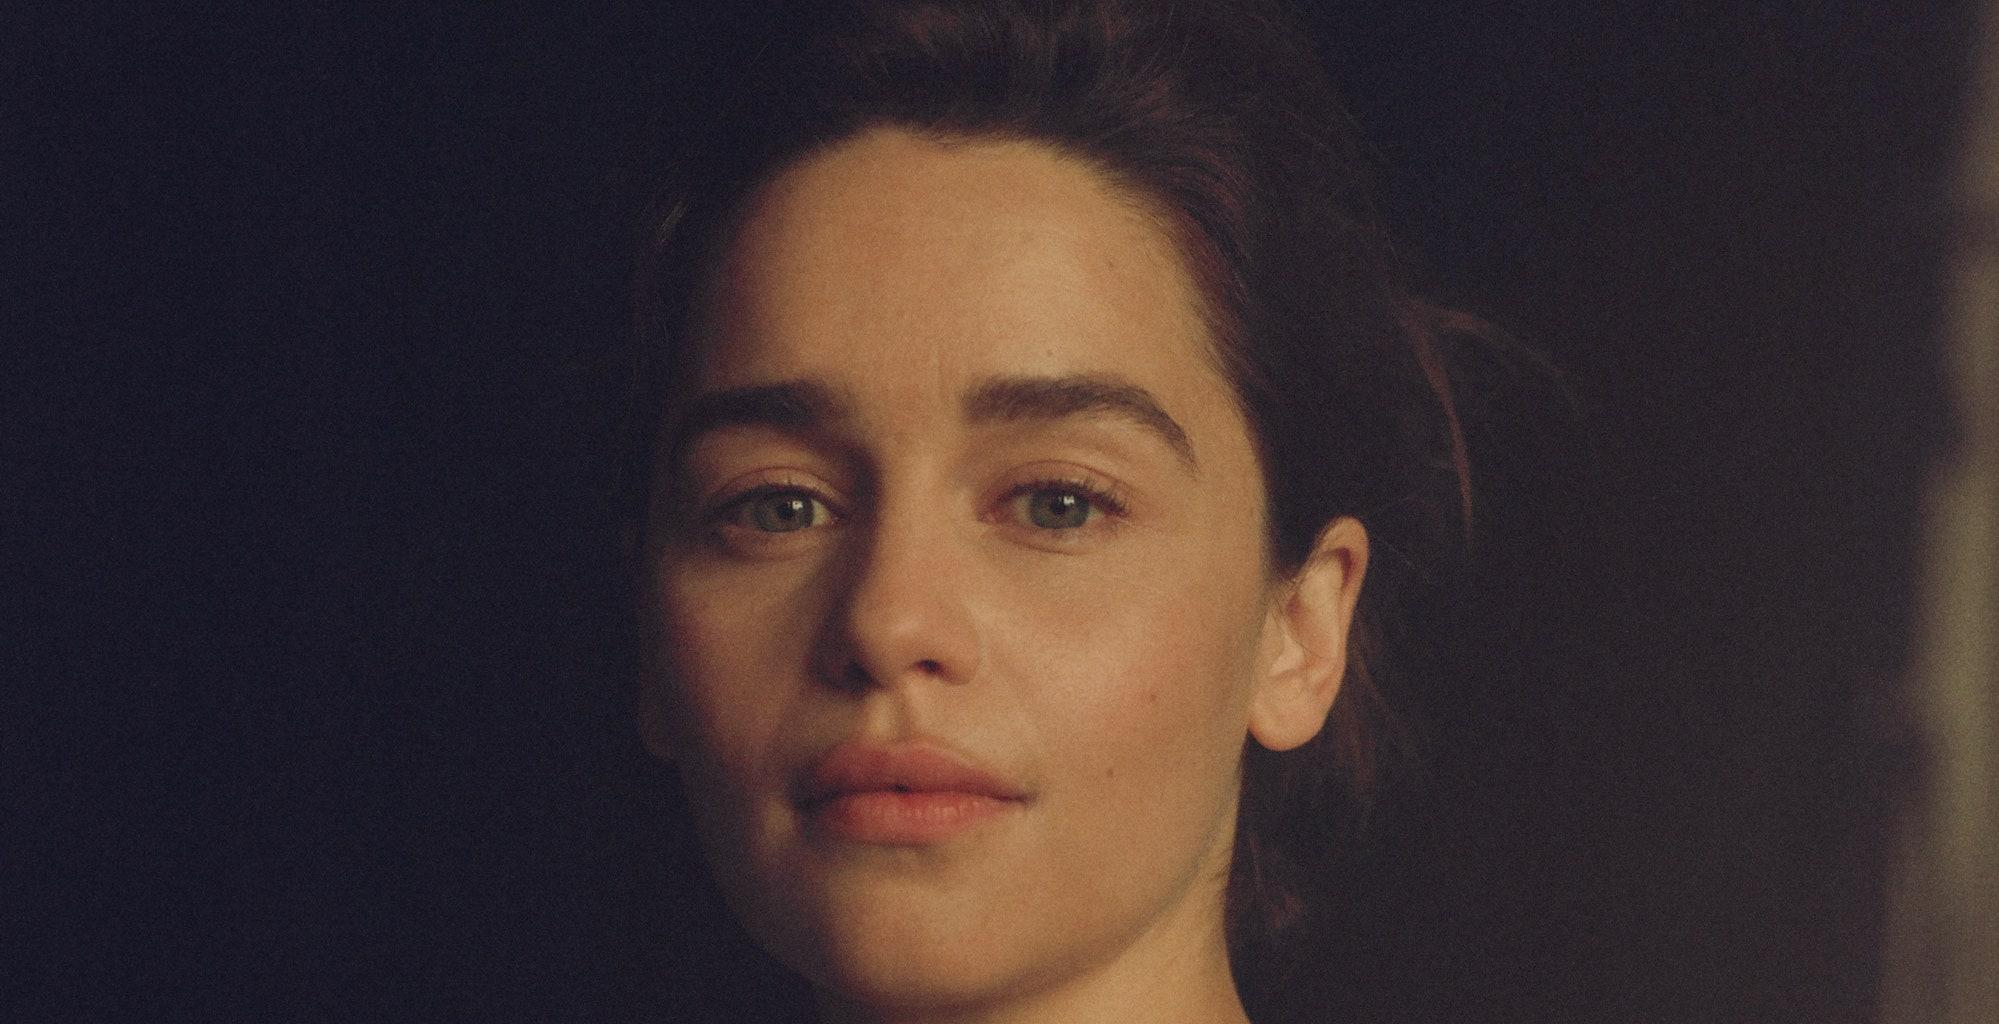 Game Of Thrones Star Emilia Clarke Reveals Her Thoughts On Plastic Surgery